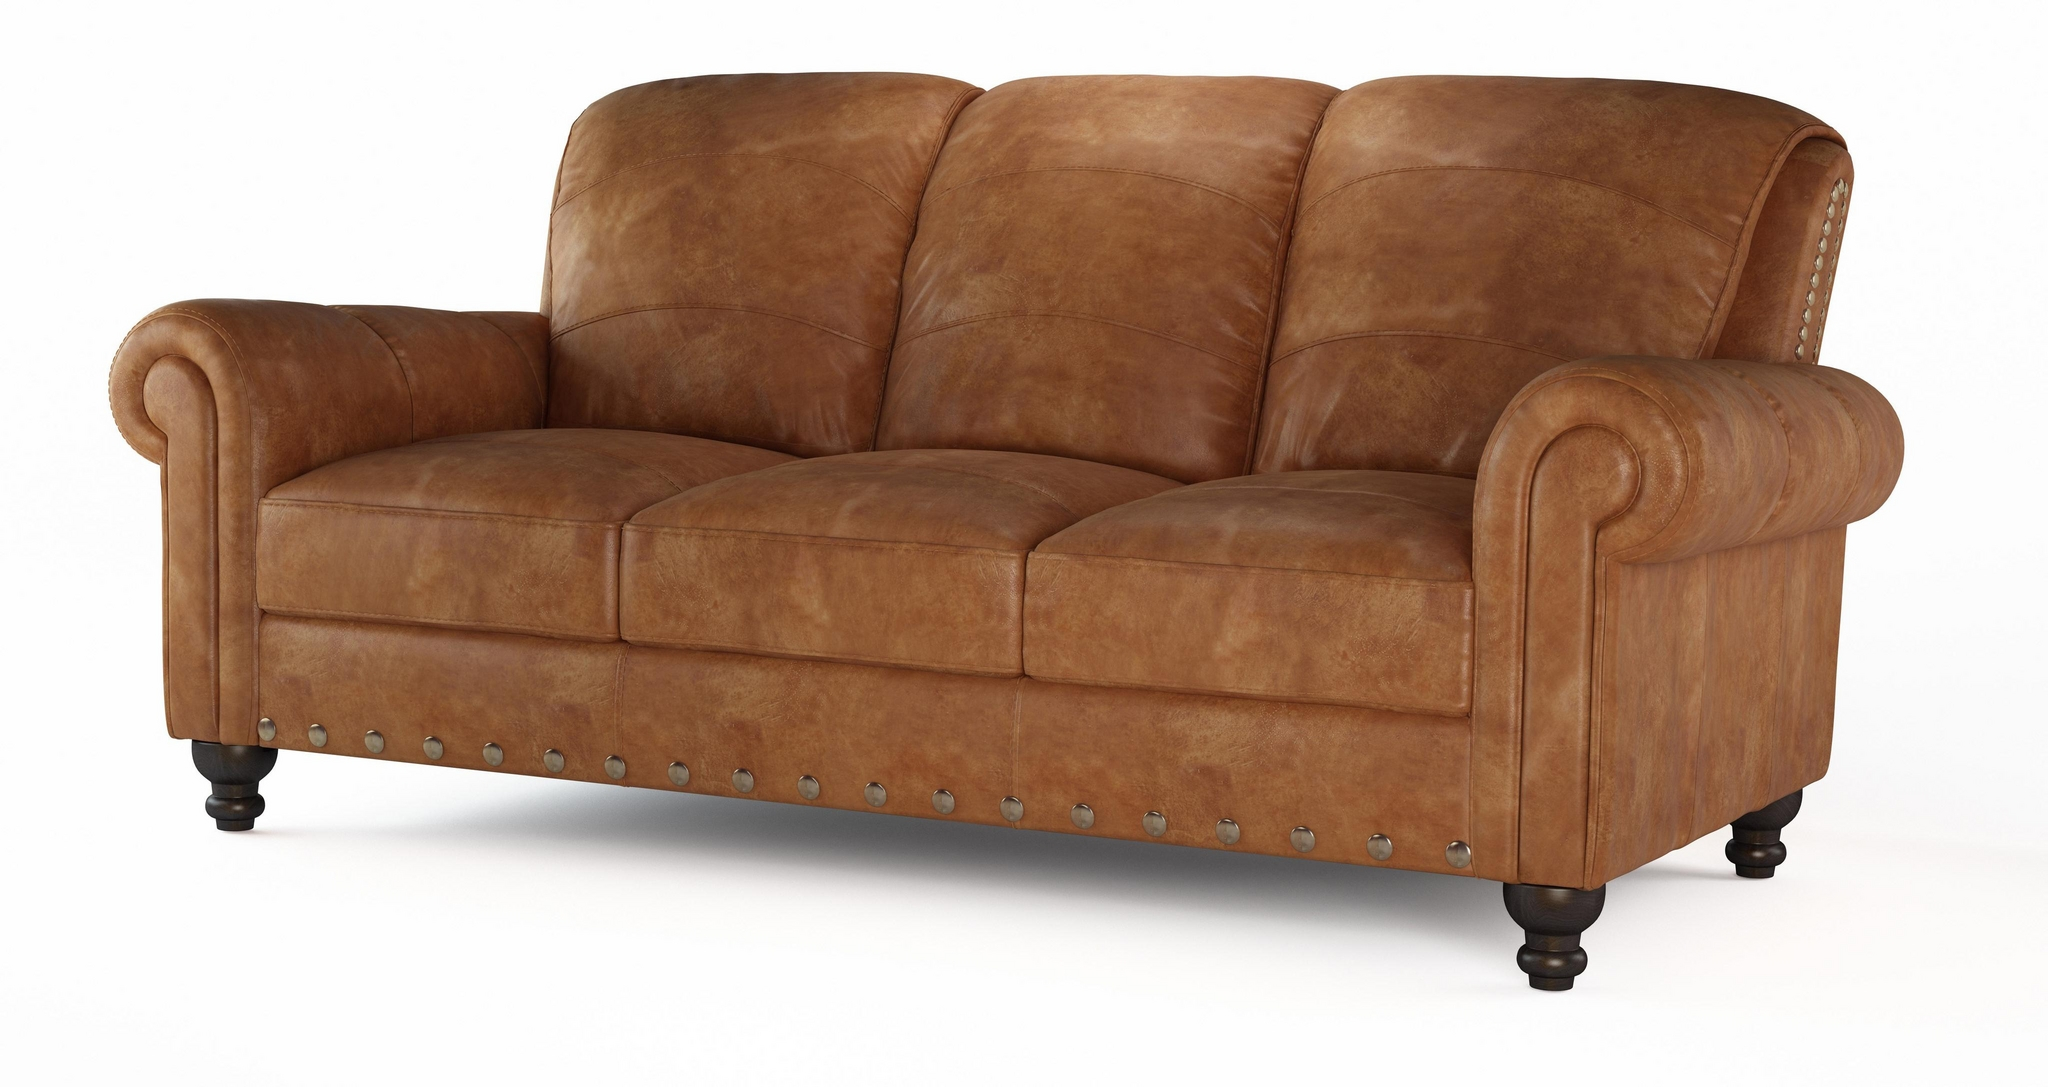 Dfs Perth 3 Seater Settee 100 Real Natural Leather Tan